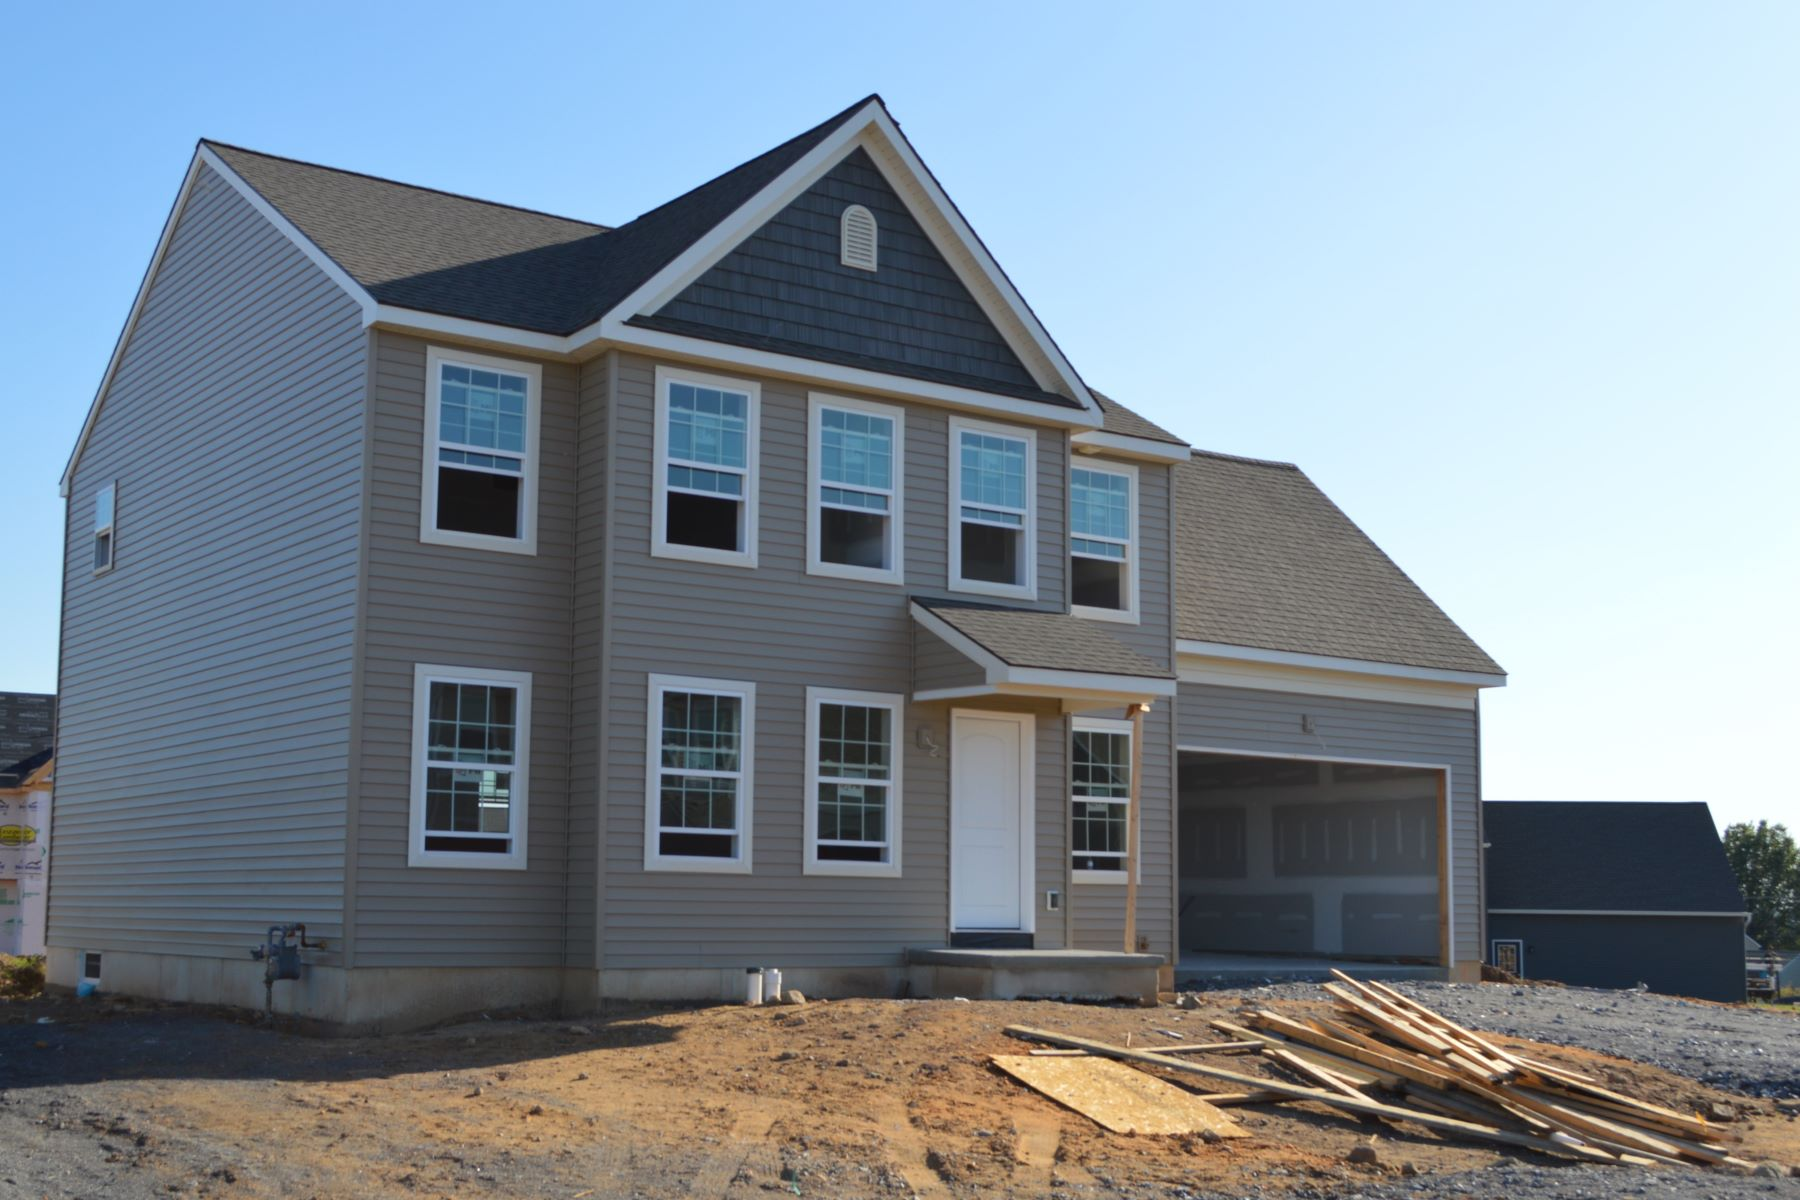 Single Family Homes for Sale at 806 Westbrooke Drive Lot 138 Elizabethtown, Pennsylvania 17022 United States